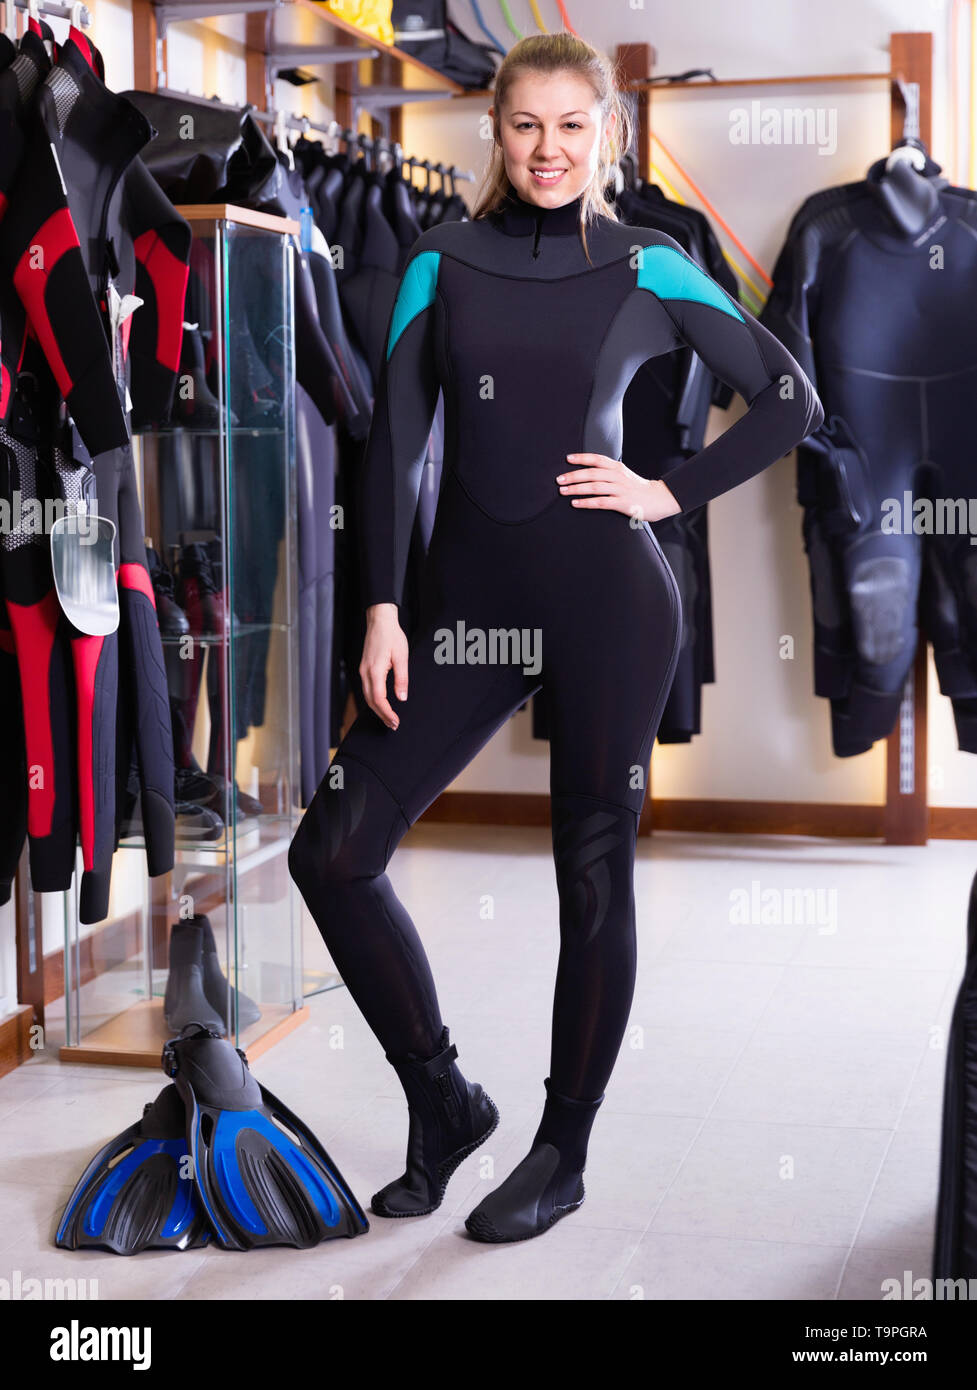 Sporty cheerful  smiling woman is posing in diving costume in the diving store. - Stock Image